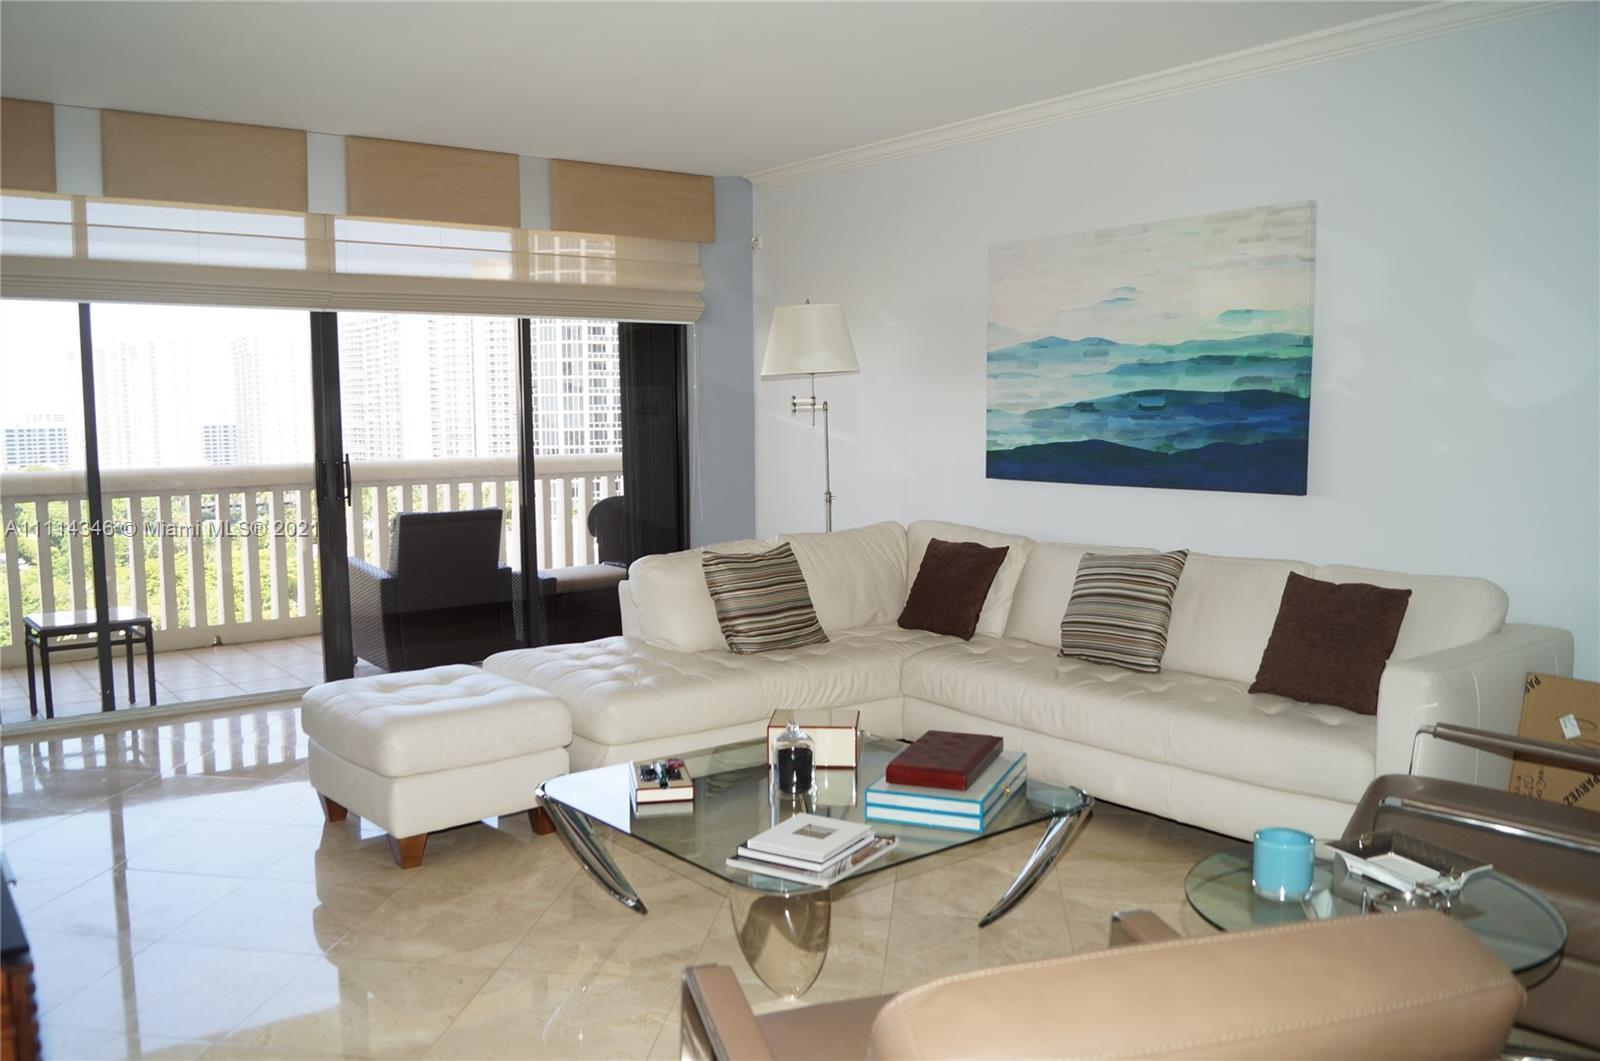 PRICED TO SELL!!! FABULOUS WATER VIEWS FROM THIS RECENTLY RENOVATED 2/2 IN LUXURIOUS WILLIAMS ISLAND